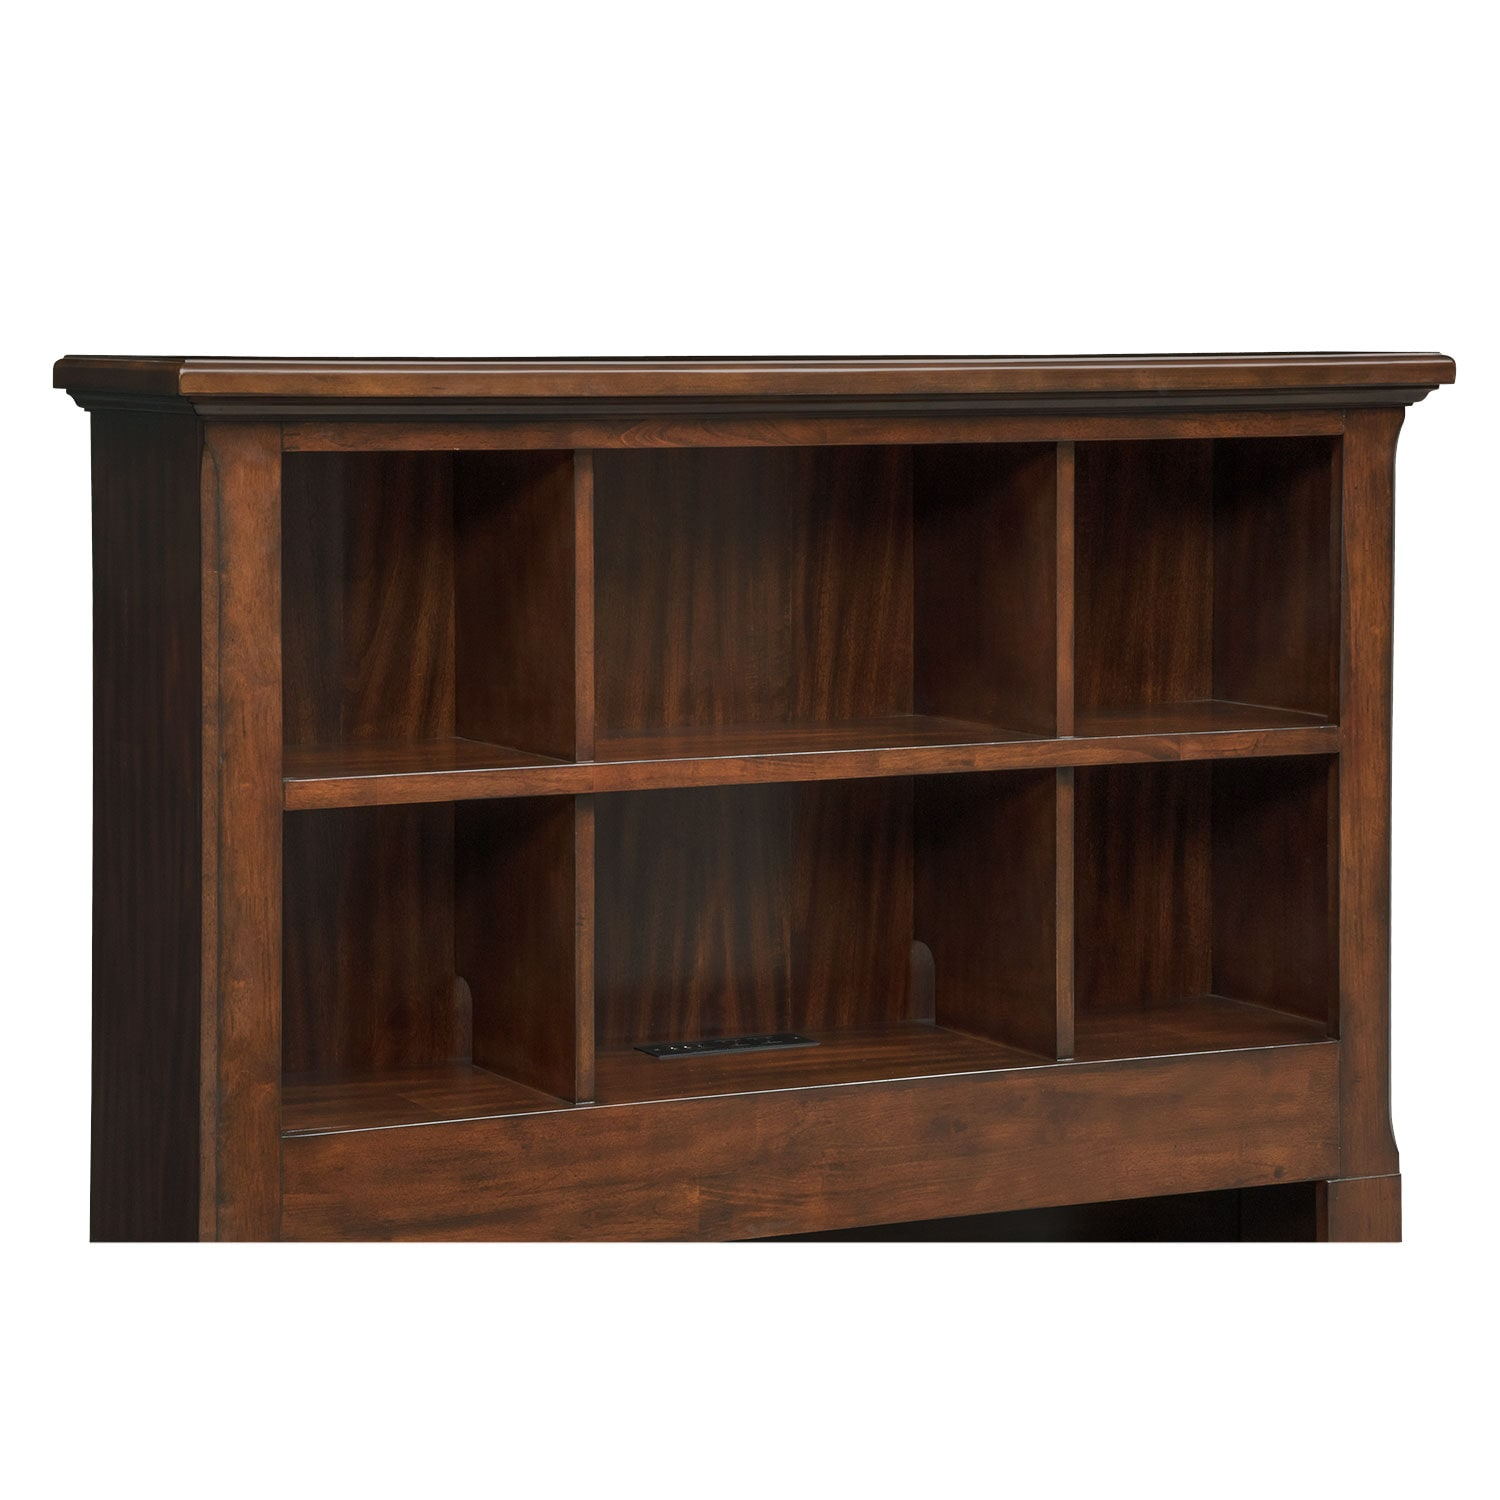 #68422C Hanover Youth Twin Bookcase Bed With Storage Cherry Value City  with 1500x1500 px of Brand New Bookcase With Storage 15001500 pic @ avoidforclosure.info